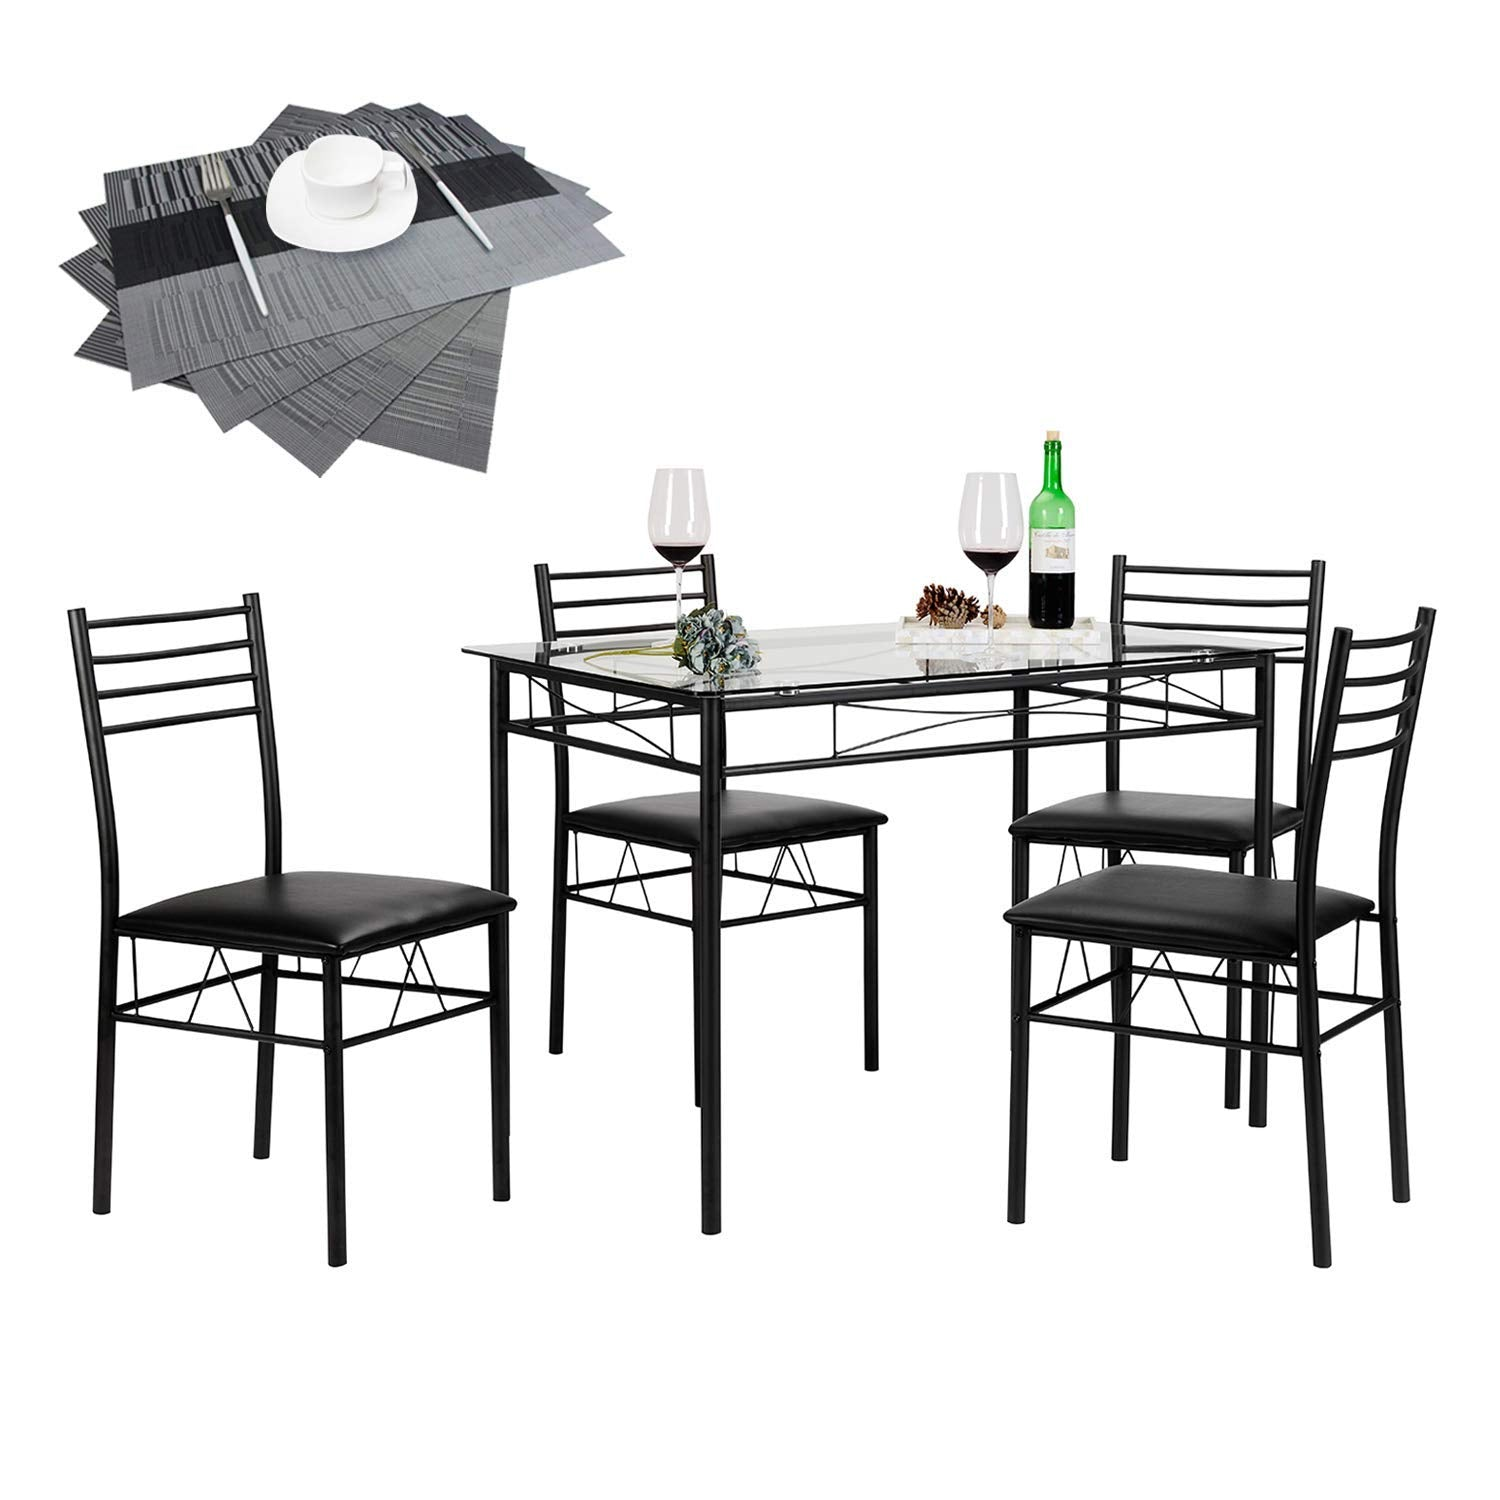 Dining Table Set with 4 Chairs | Vecelo furniture